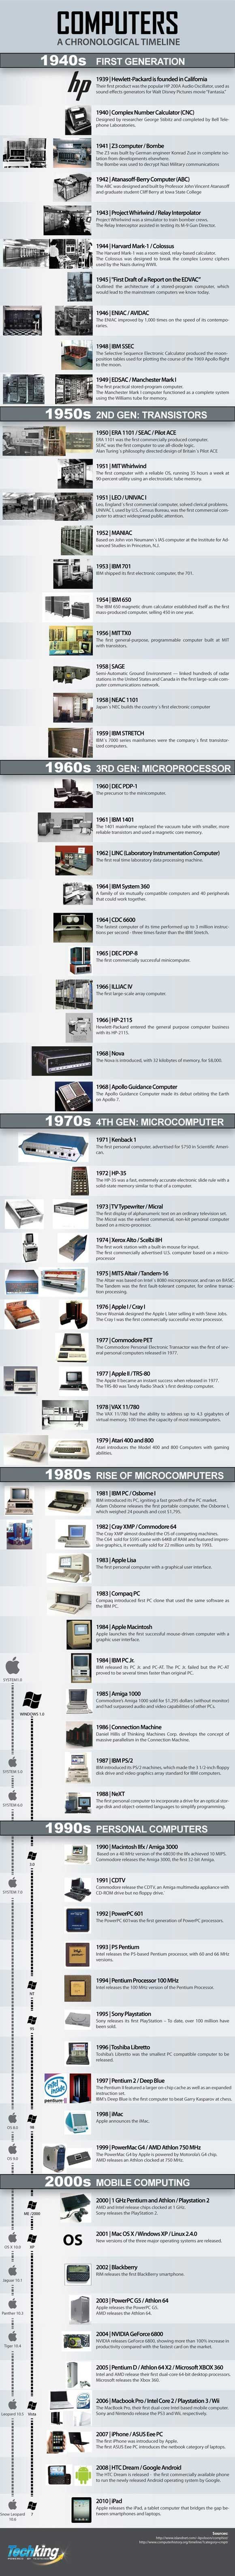 Computers - a chronological timetable.